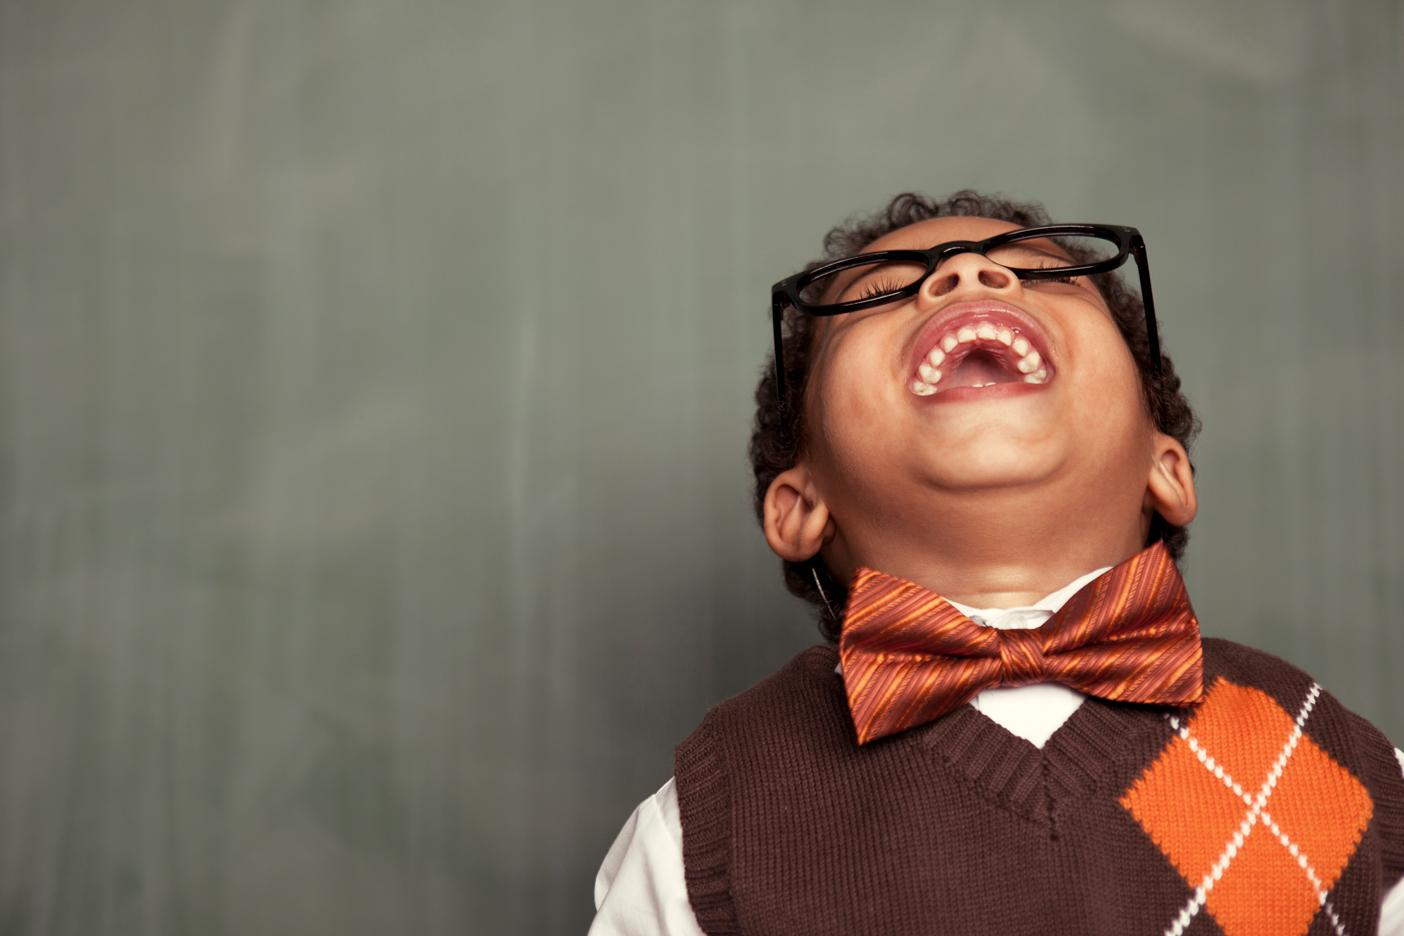 4 Tips To Develop Your Child's Sense Of Humour